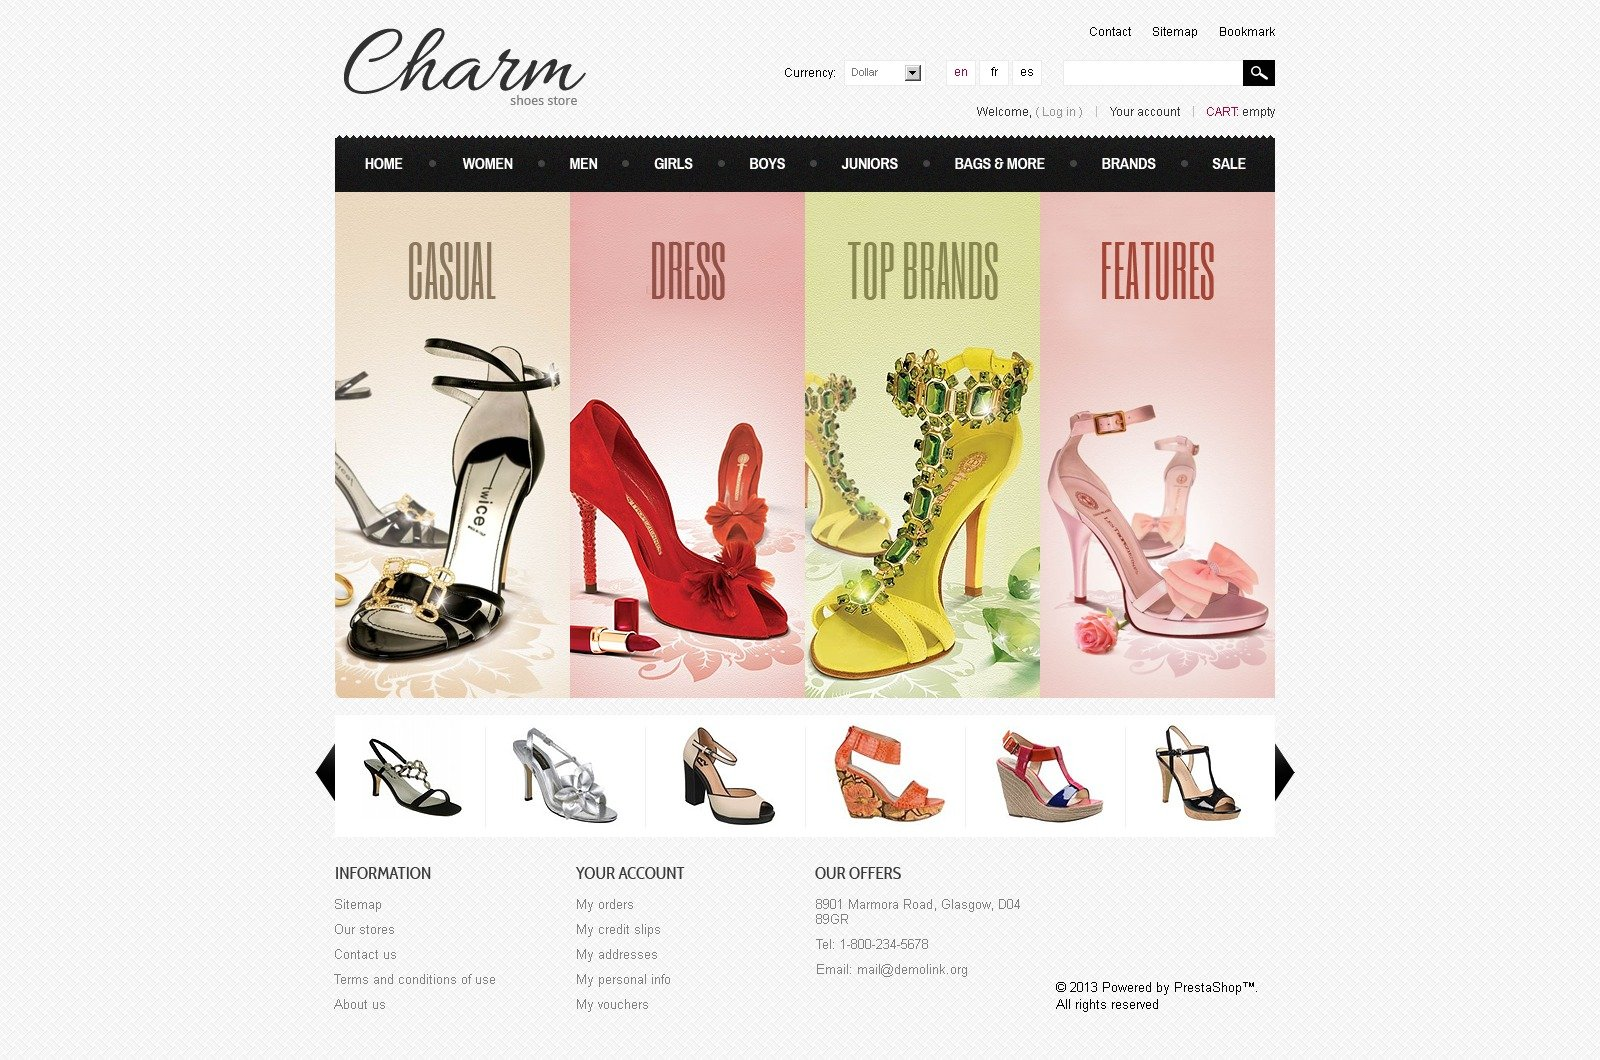 footwear store prestashop theme #43800, Shoe Boutique Powerpoint Presentation Free Template, Presentation templates